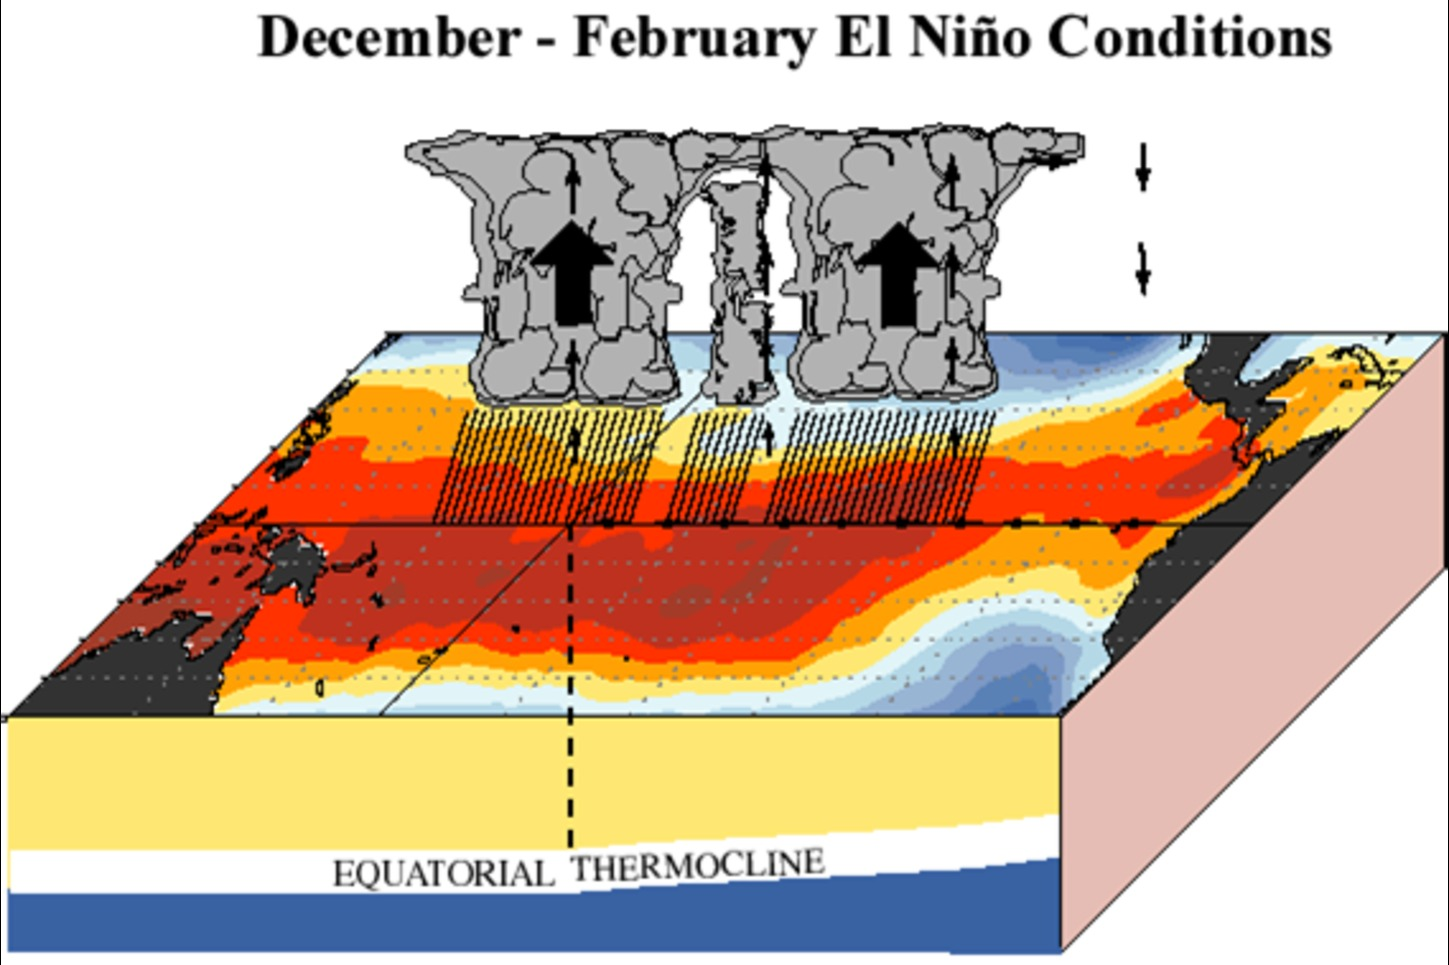 el nino and la nina explained